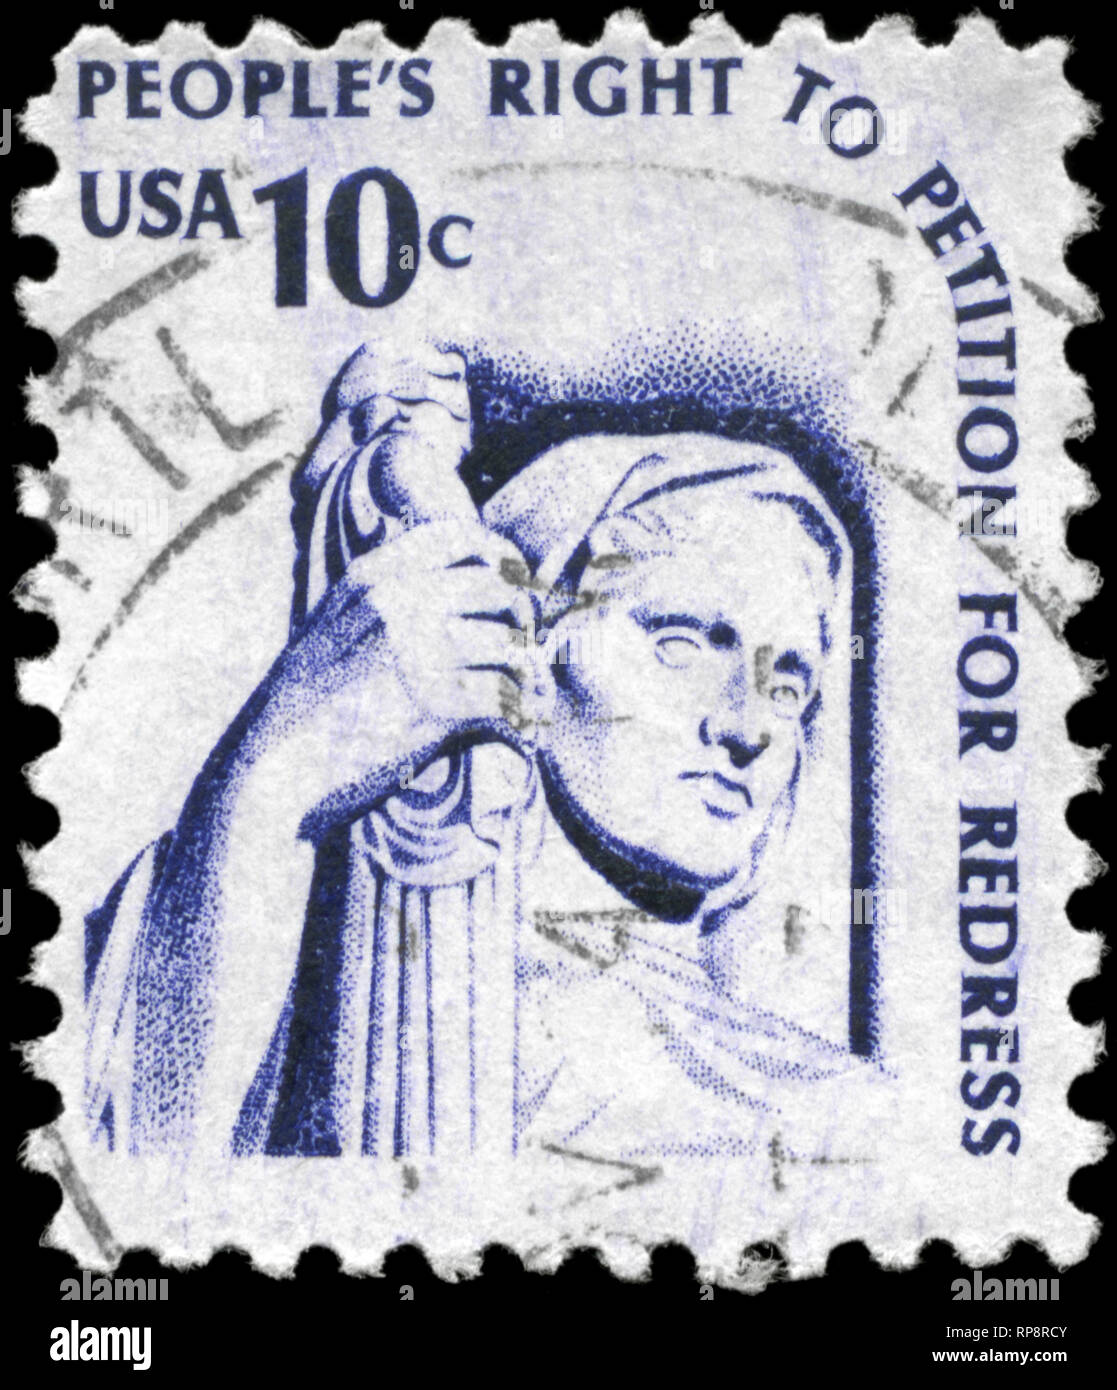 USA - CIRCA 1975: A Stamp printed in USA shows the Contemplation of Justice, Americana Issue, circa 1975 - Stock Image